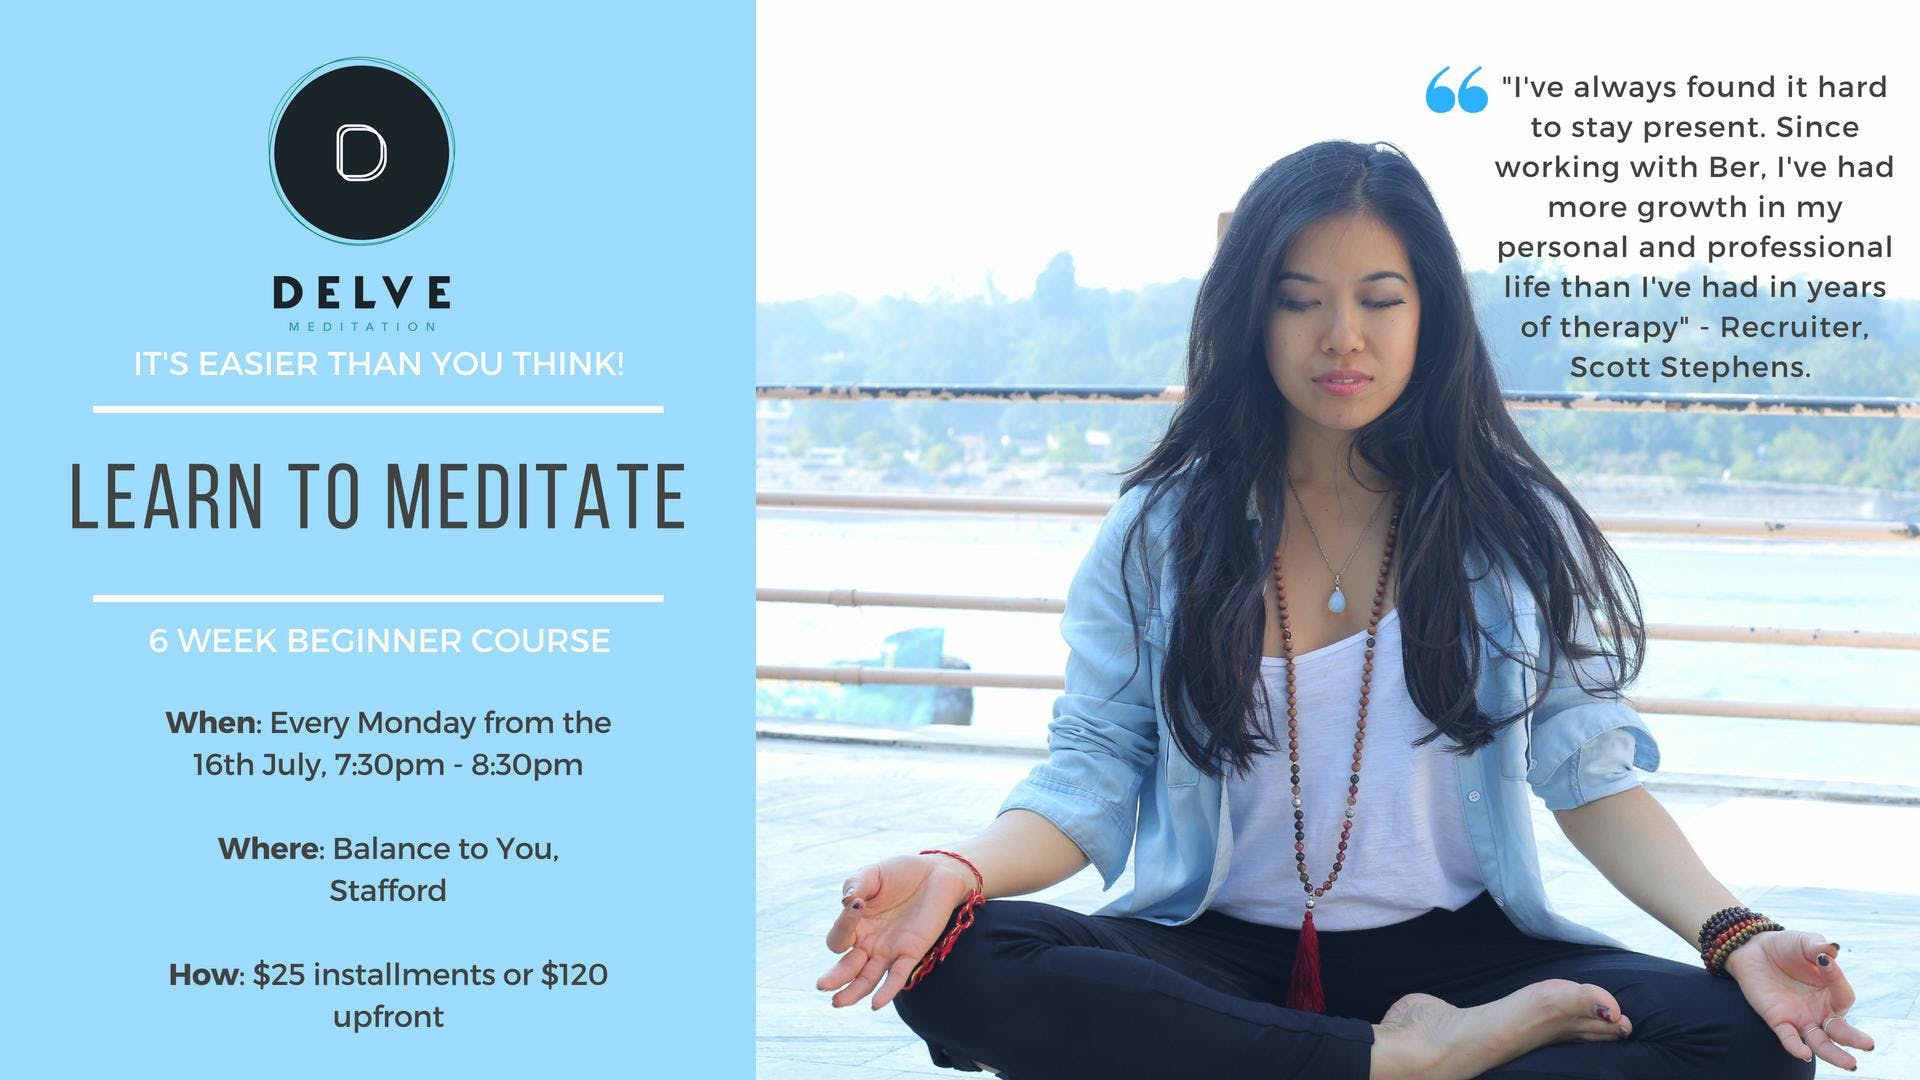 Learn to Meditate - 6 Weeks to Serenity